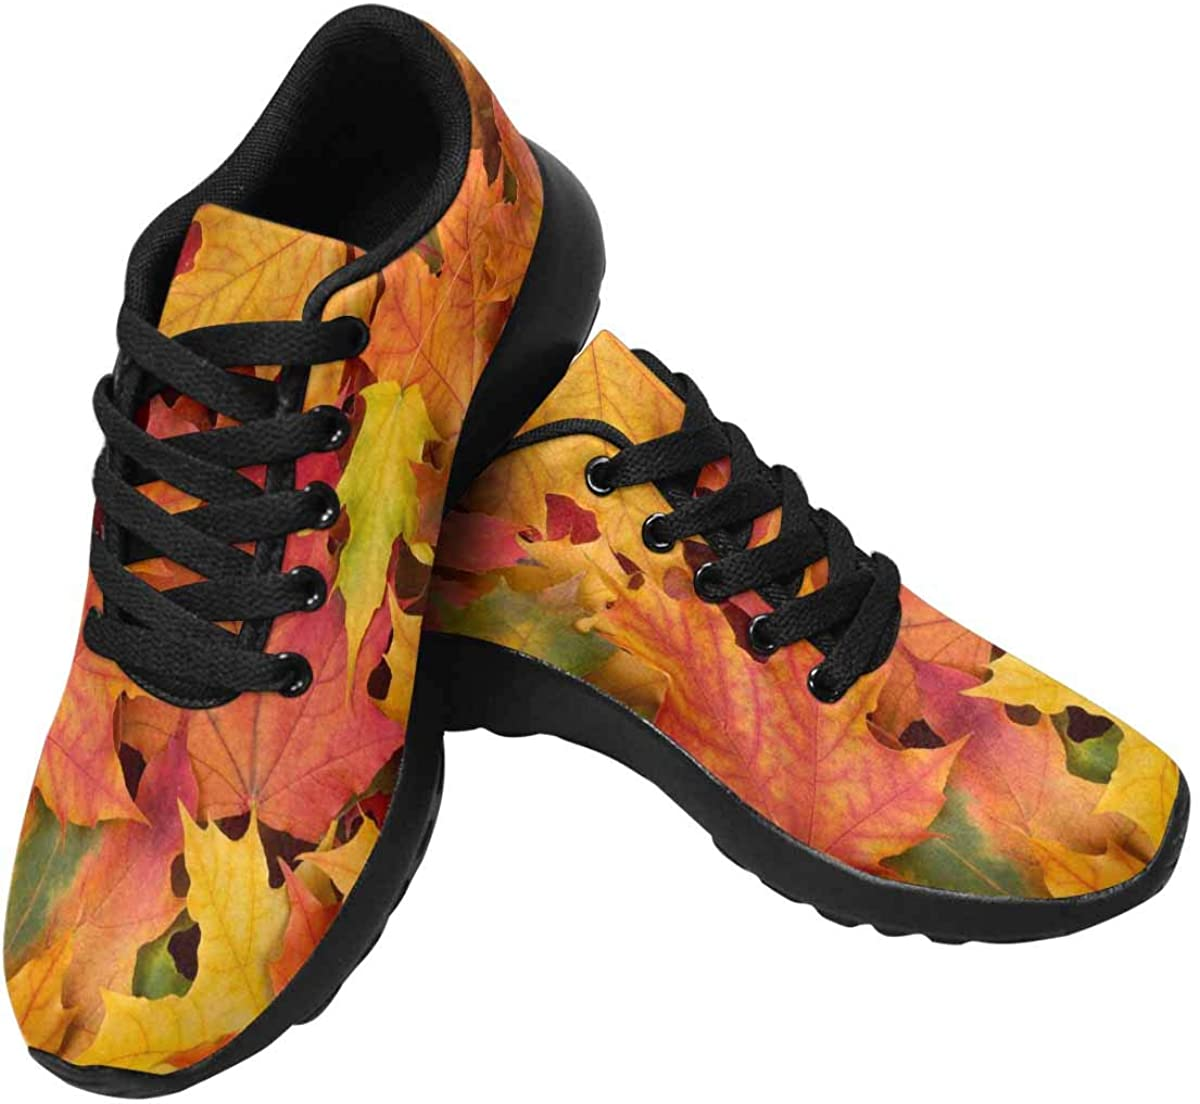 InterestPrint Fall Leaves Women's Running Shoes - Casual Breathable Athletic Tennis Sneakers